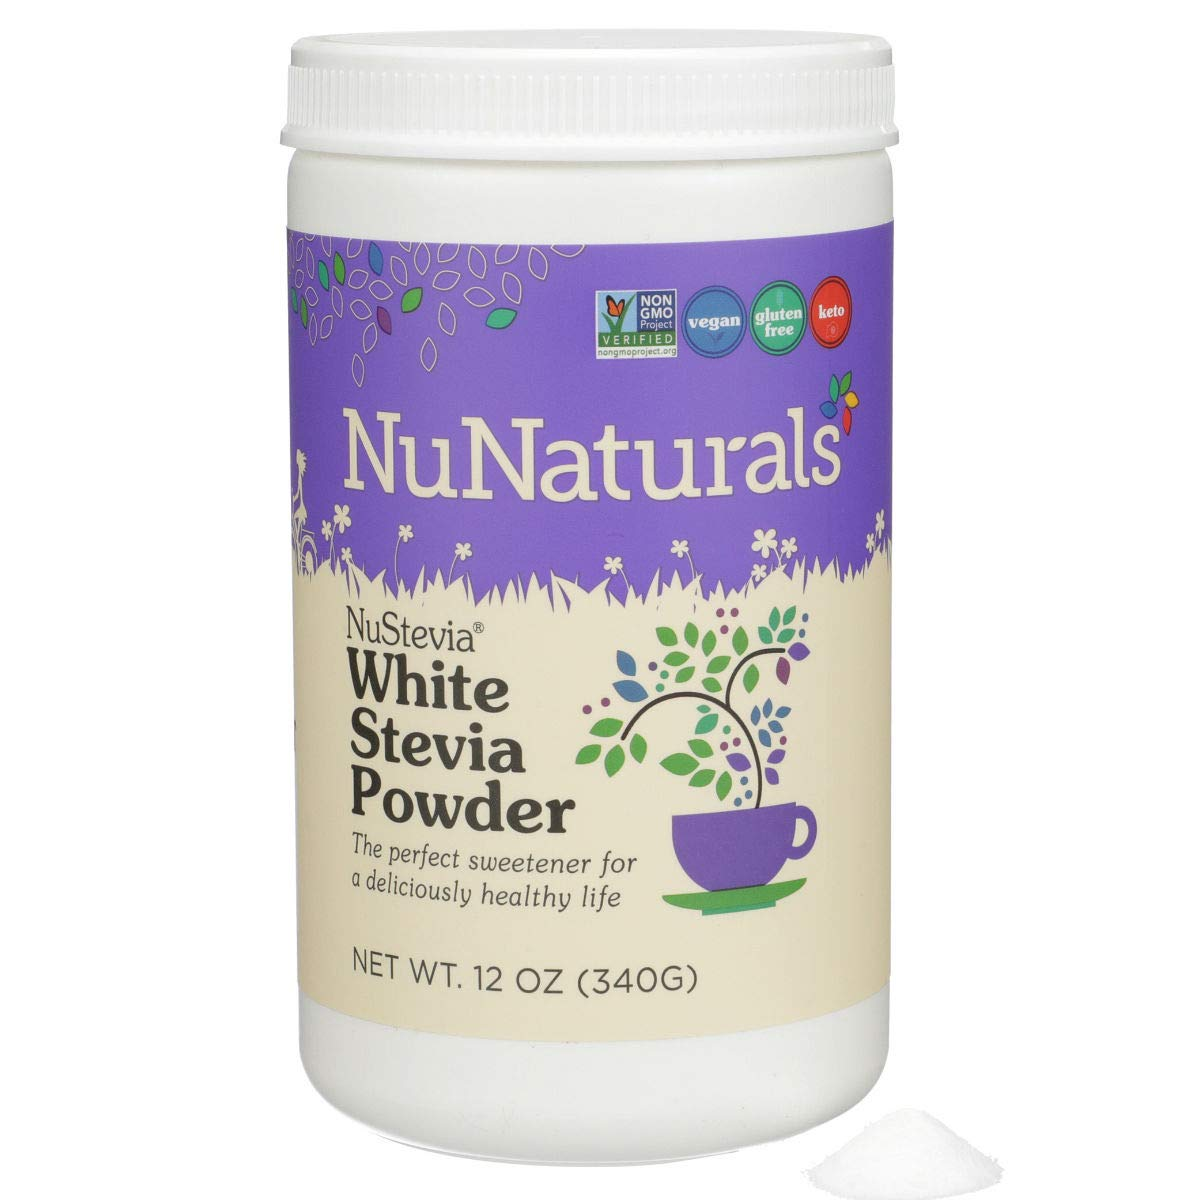 NuNaturals White Stevia Powder, All Purpose Natural Sweetener, Sugar Free, 12 Ounce